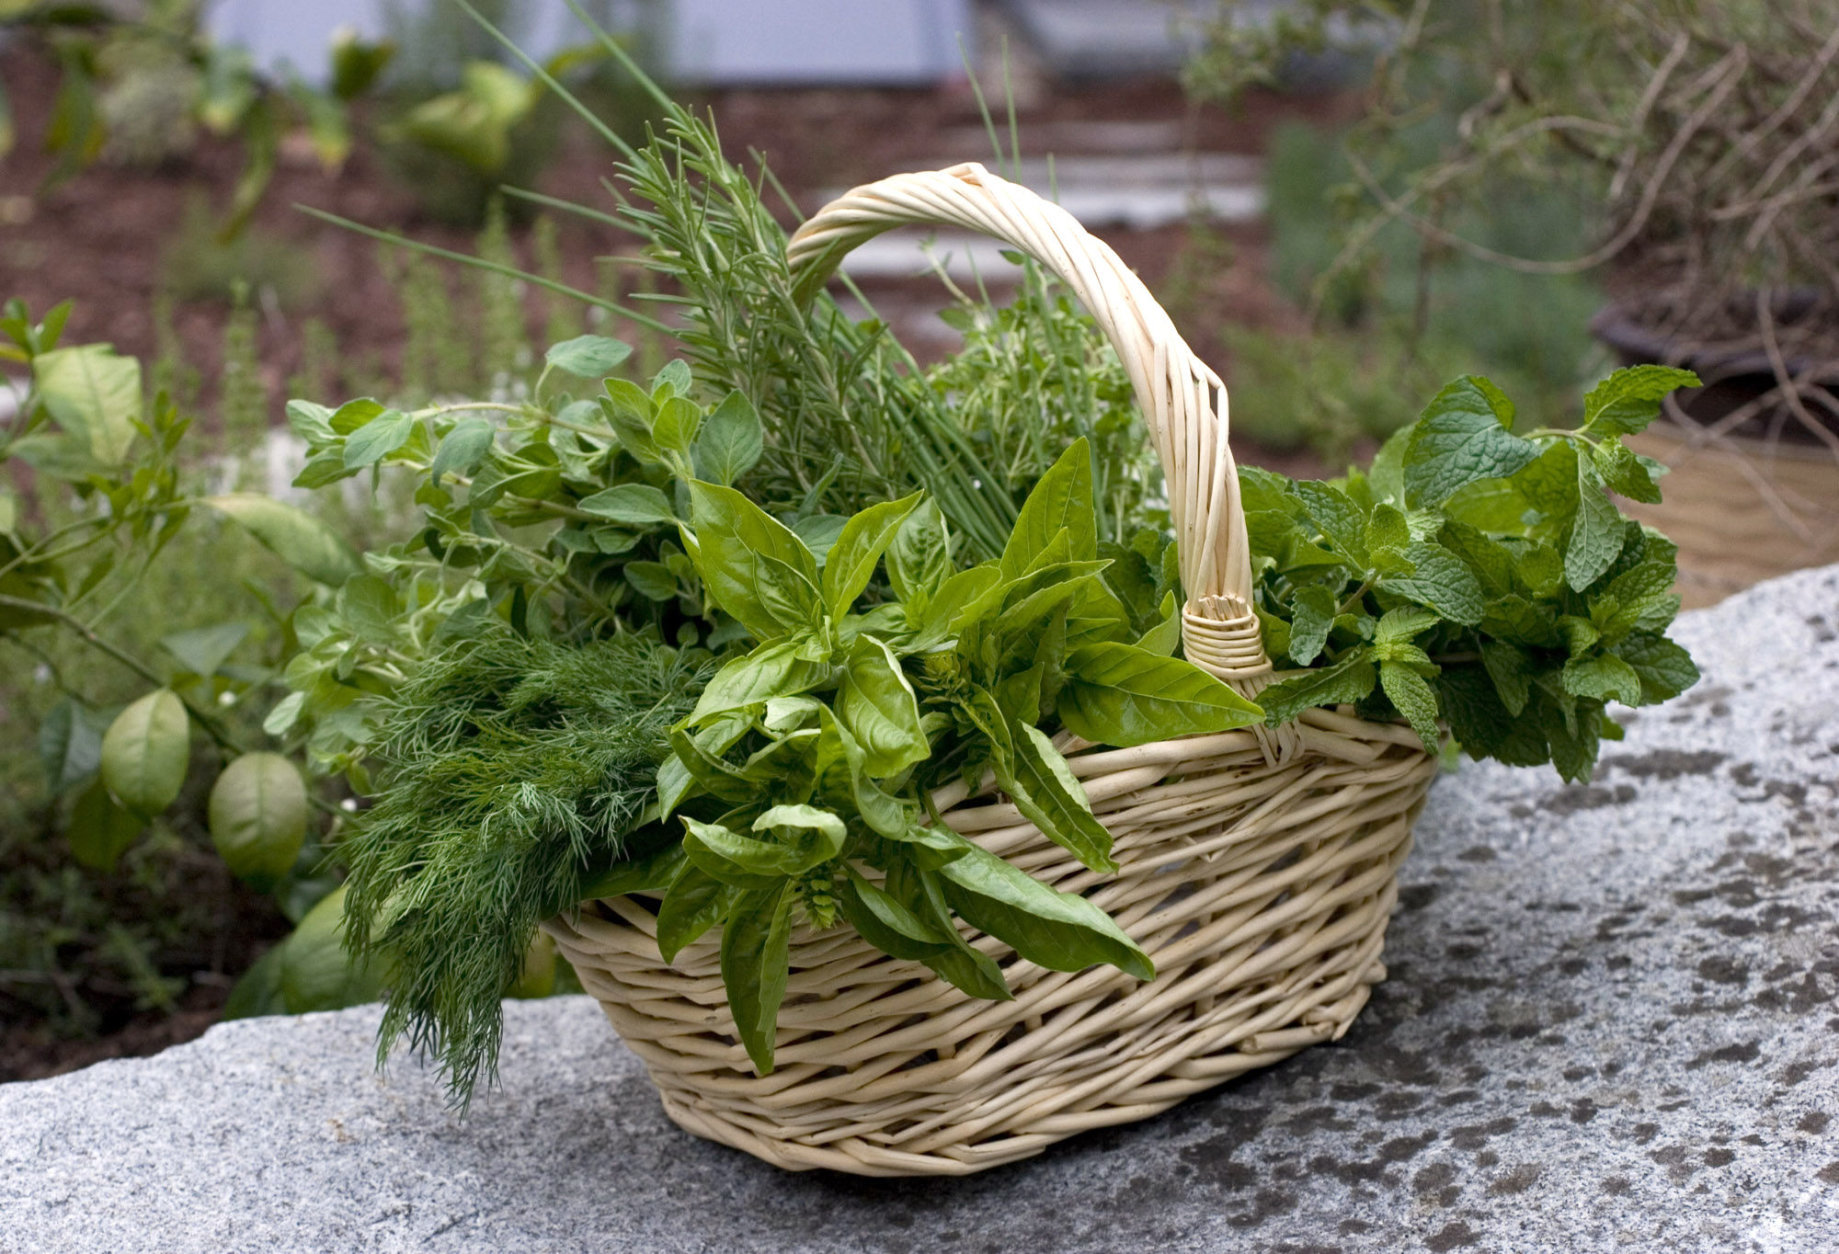 ** FOR USE WITH AP LIFESTYLES ** A variety of herbs are shown in this Aug. 20, 2007 photo.  Preserving some of the bounty of fresh herbs now coming in from the garden will keep your home grown efforts available all year. (AP Photo/Larry Crowe)